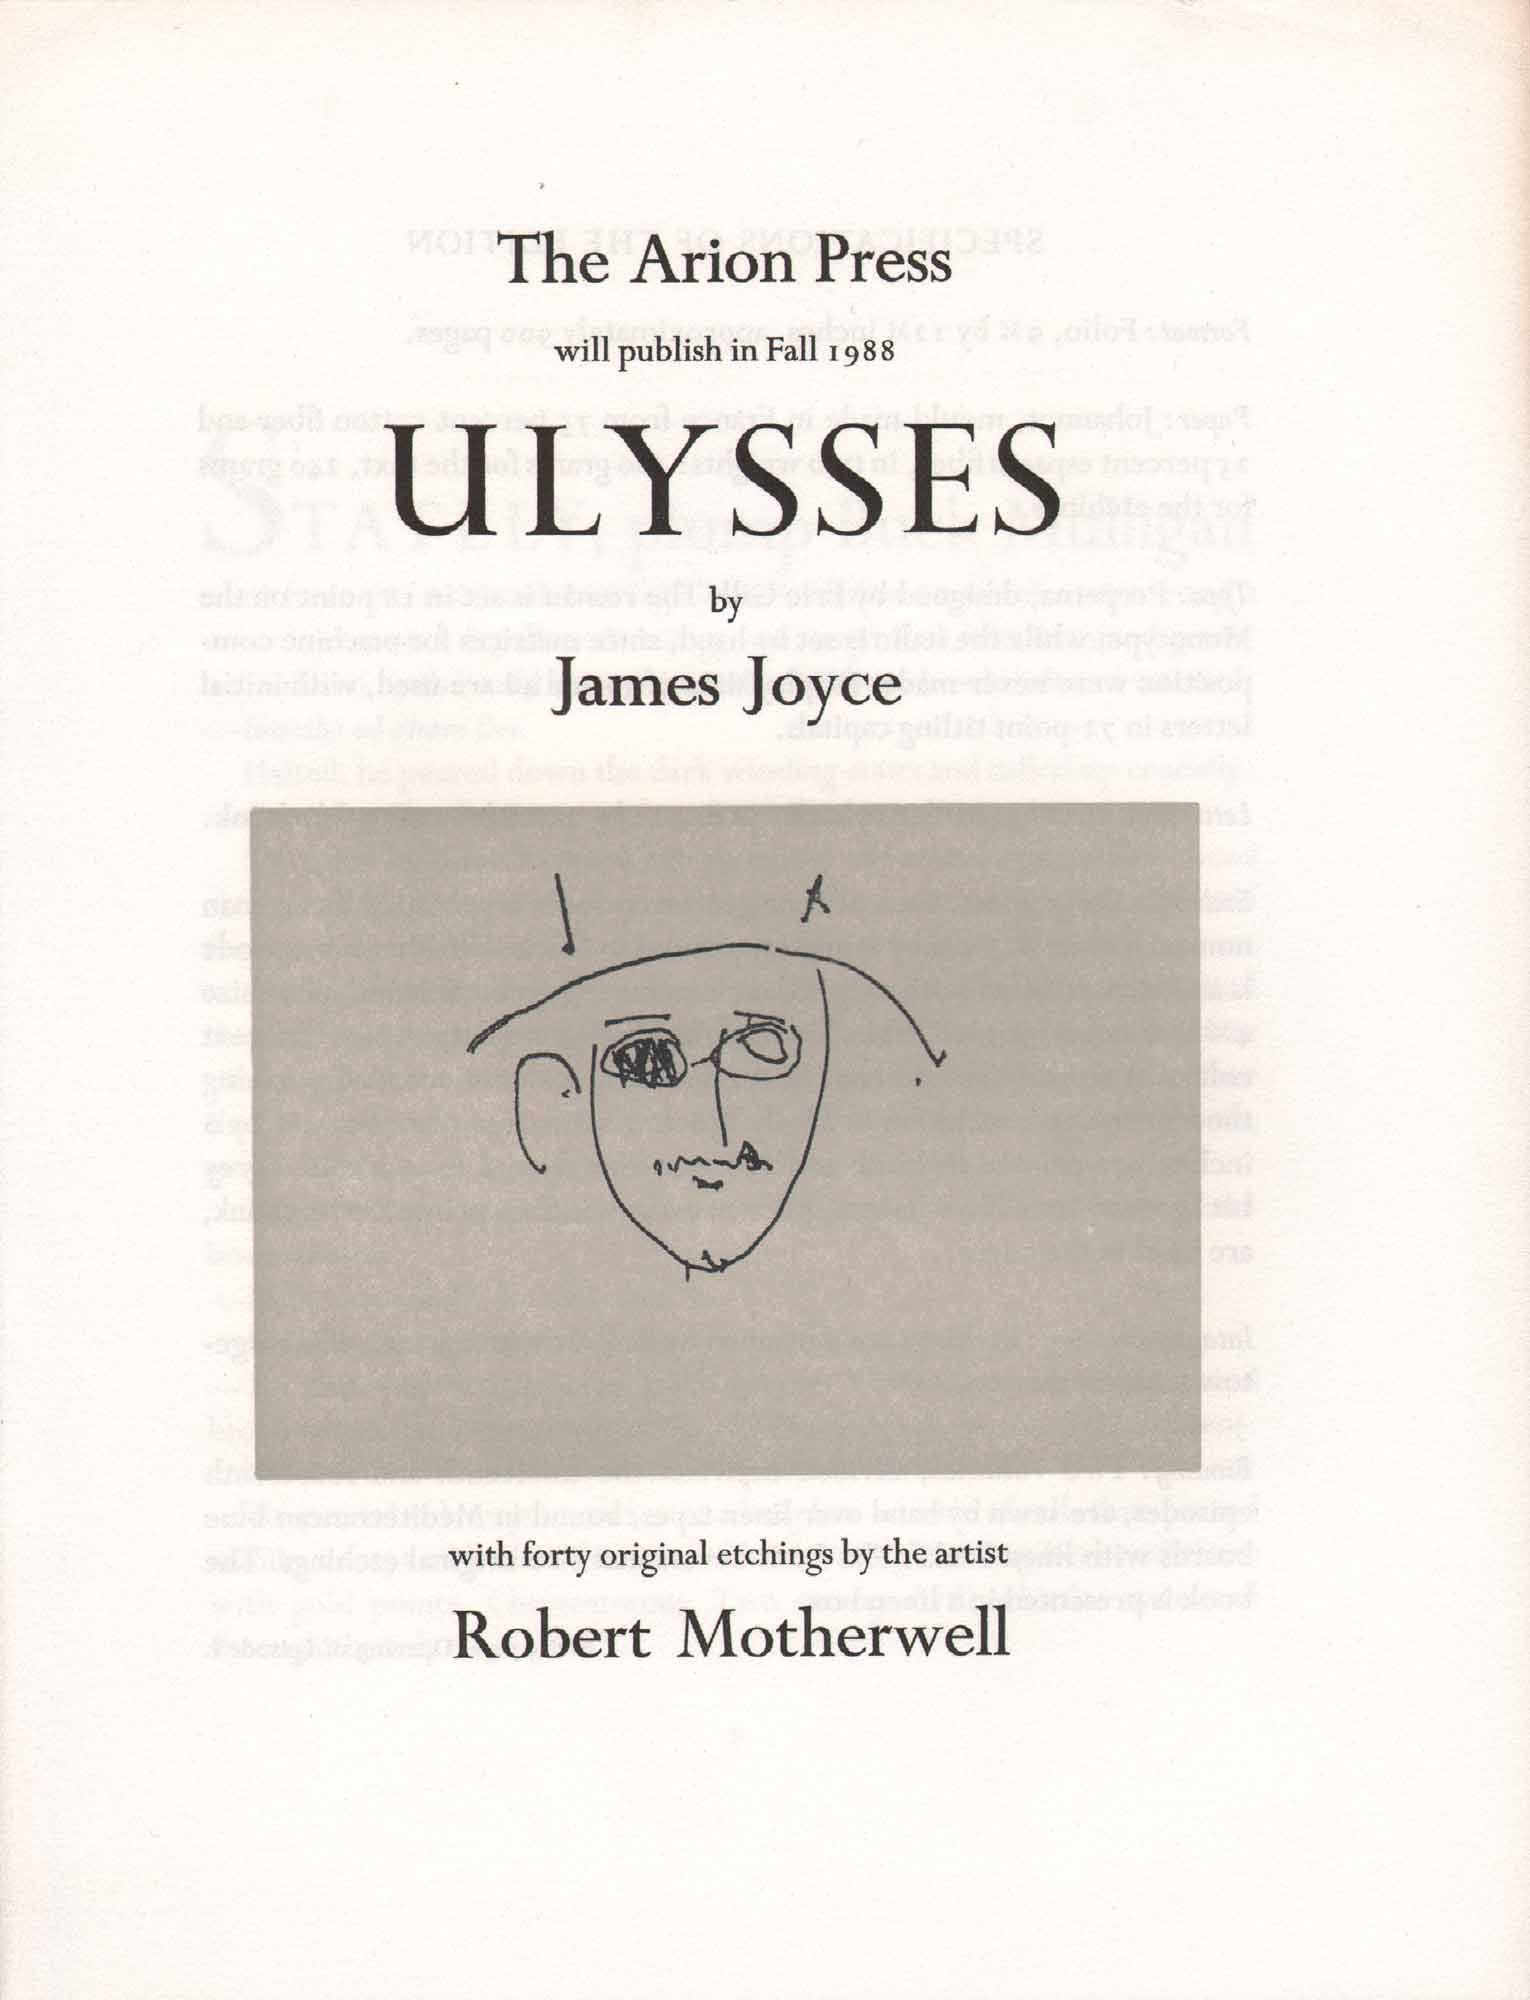 image of broadside by James Joyce with images by Robert Motherwell